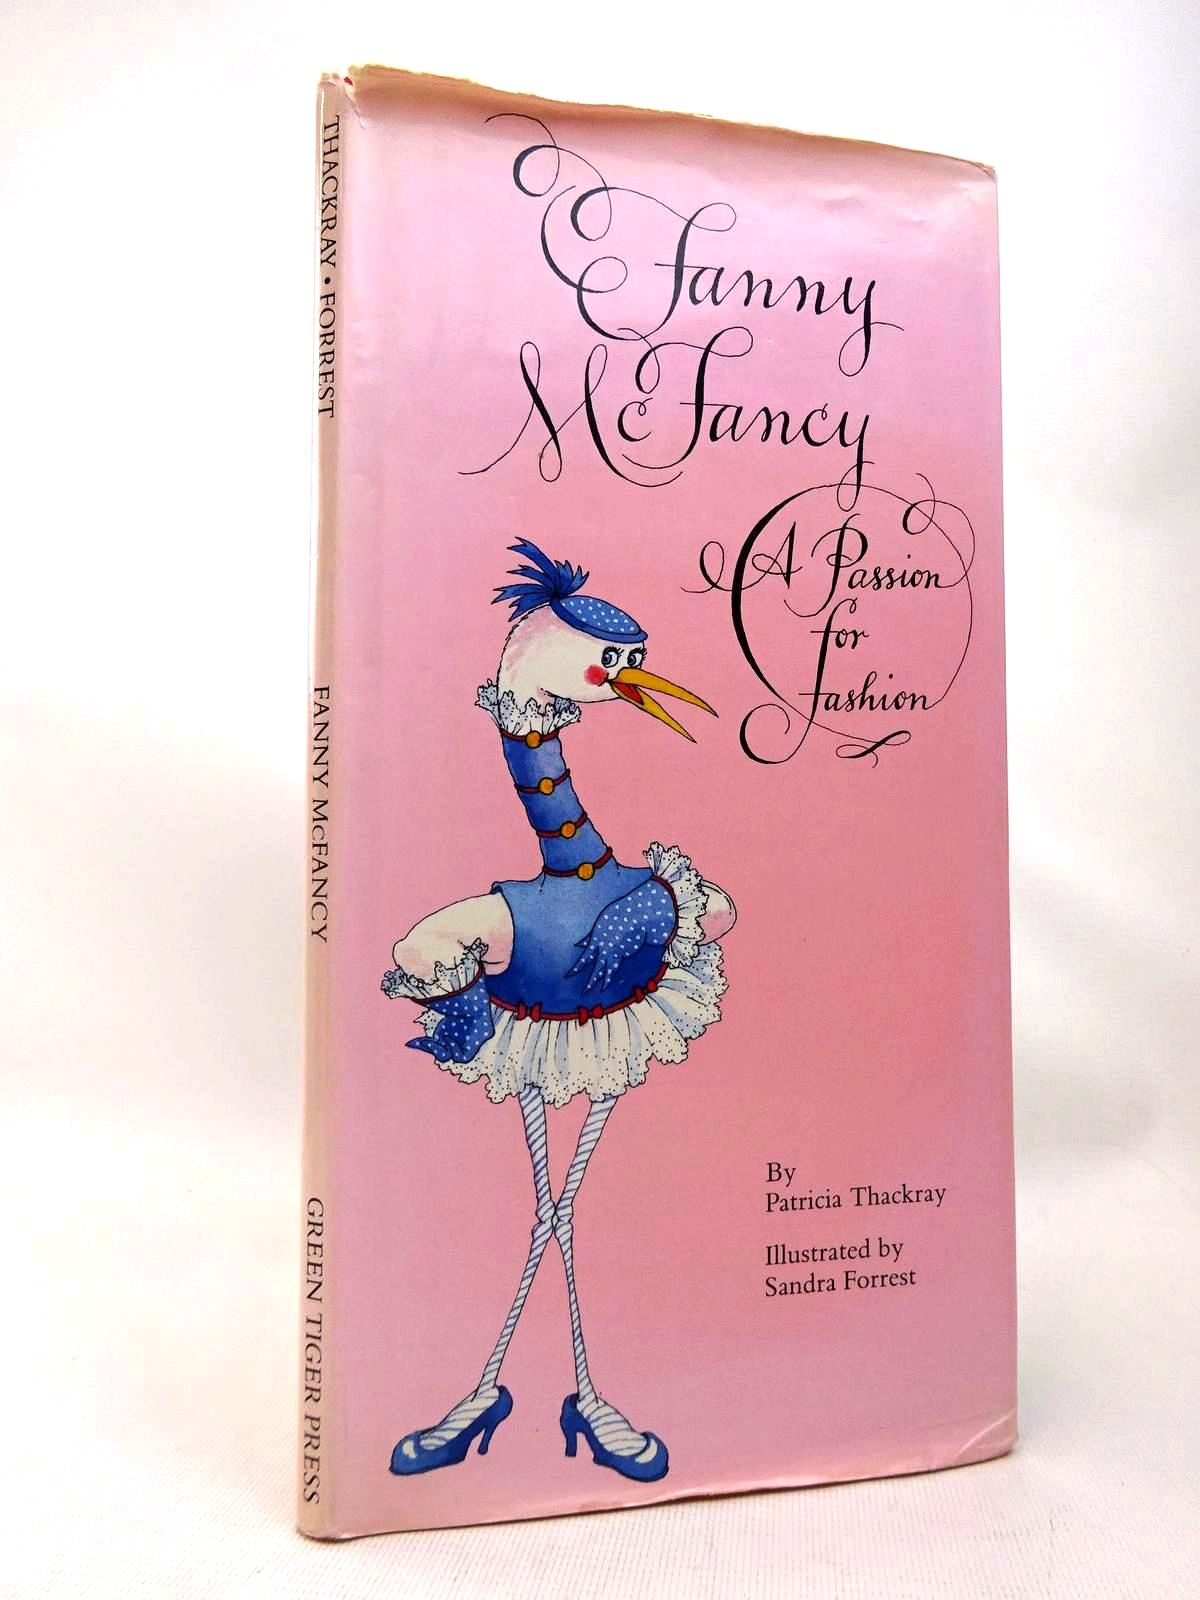 Photo of FANNY MCFANCY A PASSION FOR FASHION written by Thackray, Patricia illustrated by Forrest, Sandra published by Green Tiger Press (STOCK CODE: 1816499)  for sale by Stella & Rose's Books